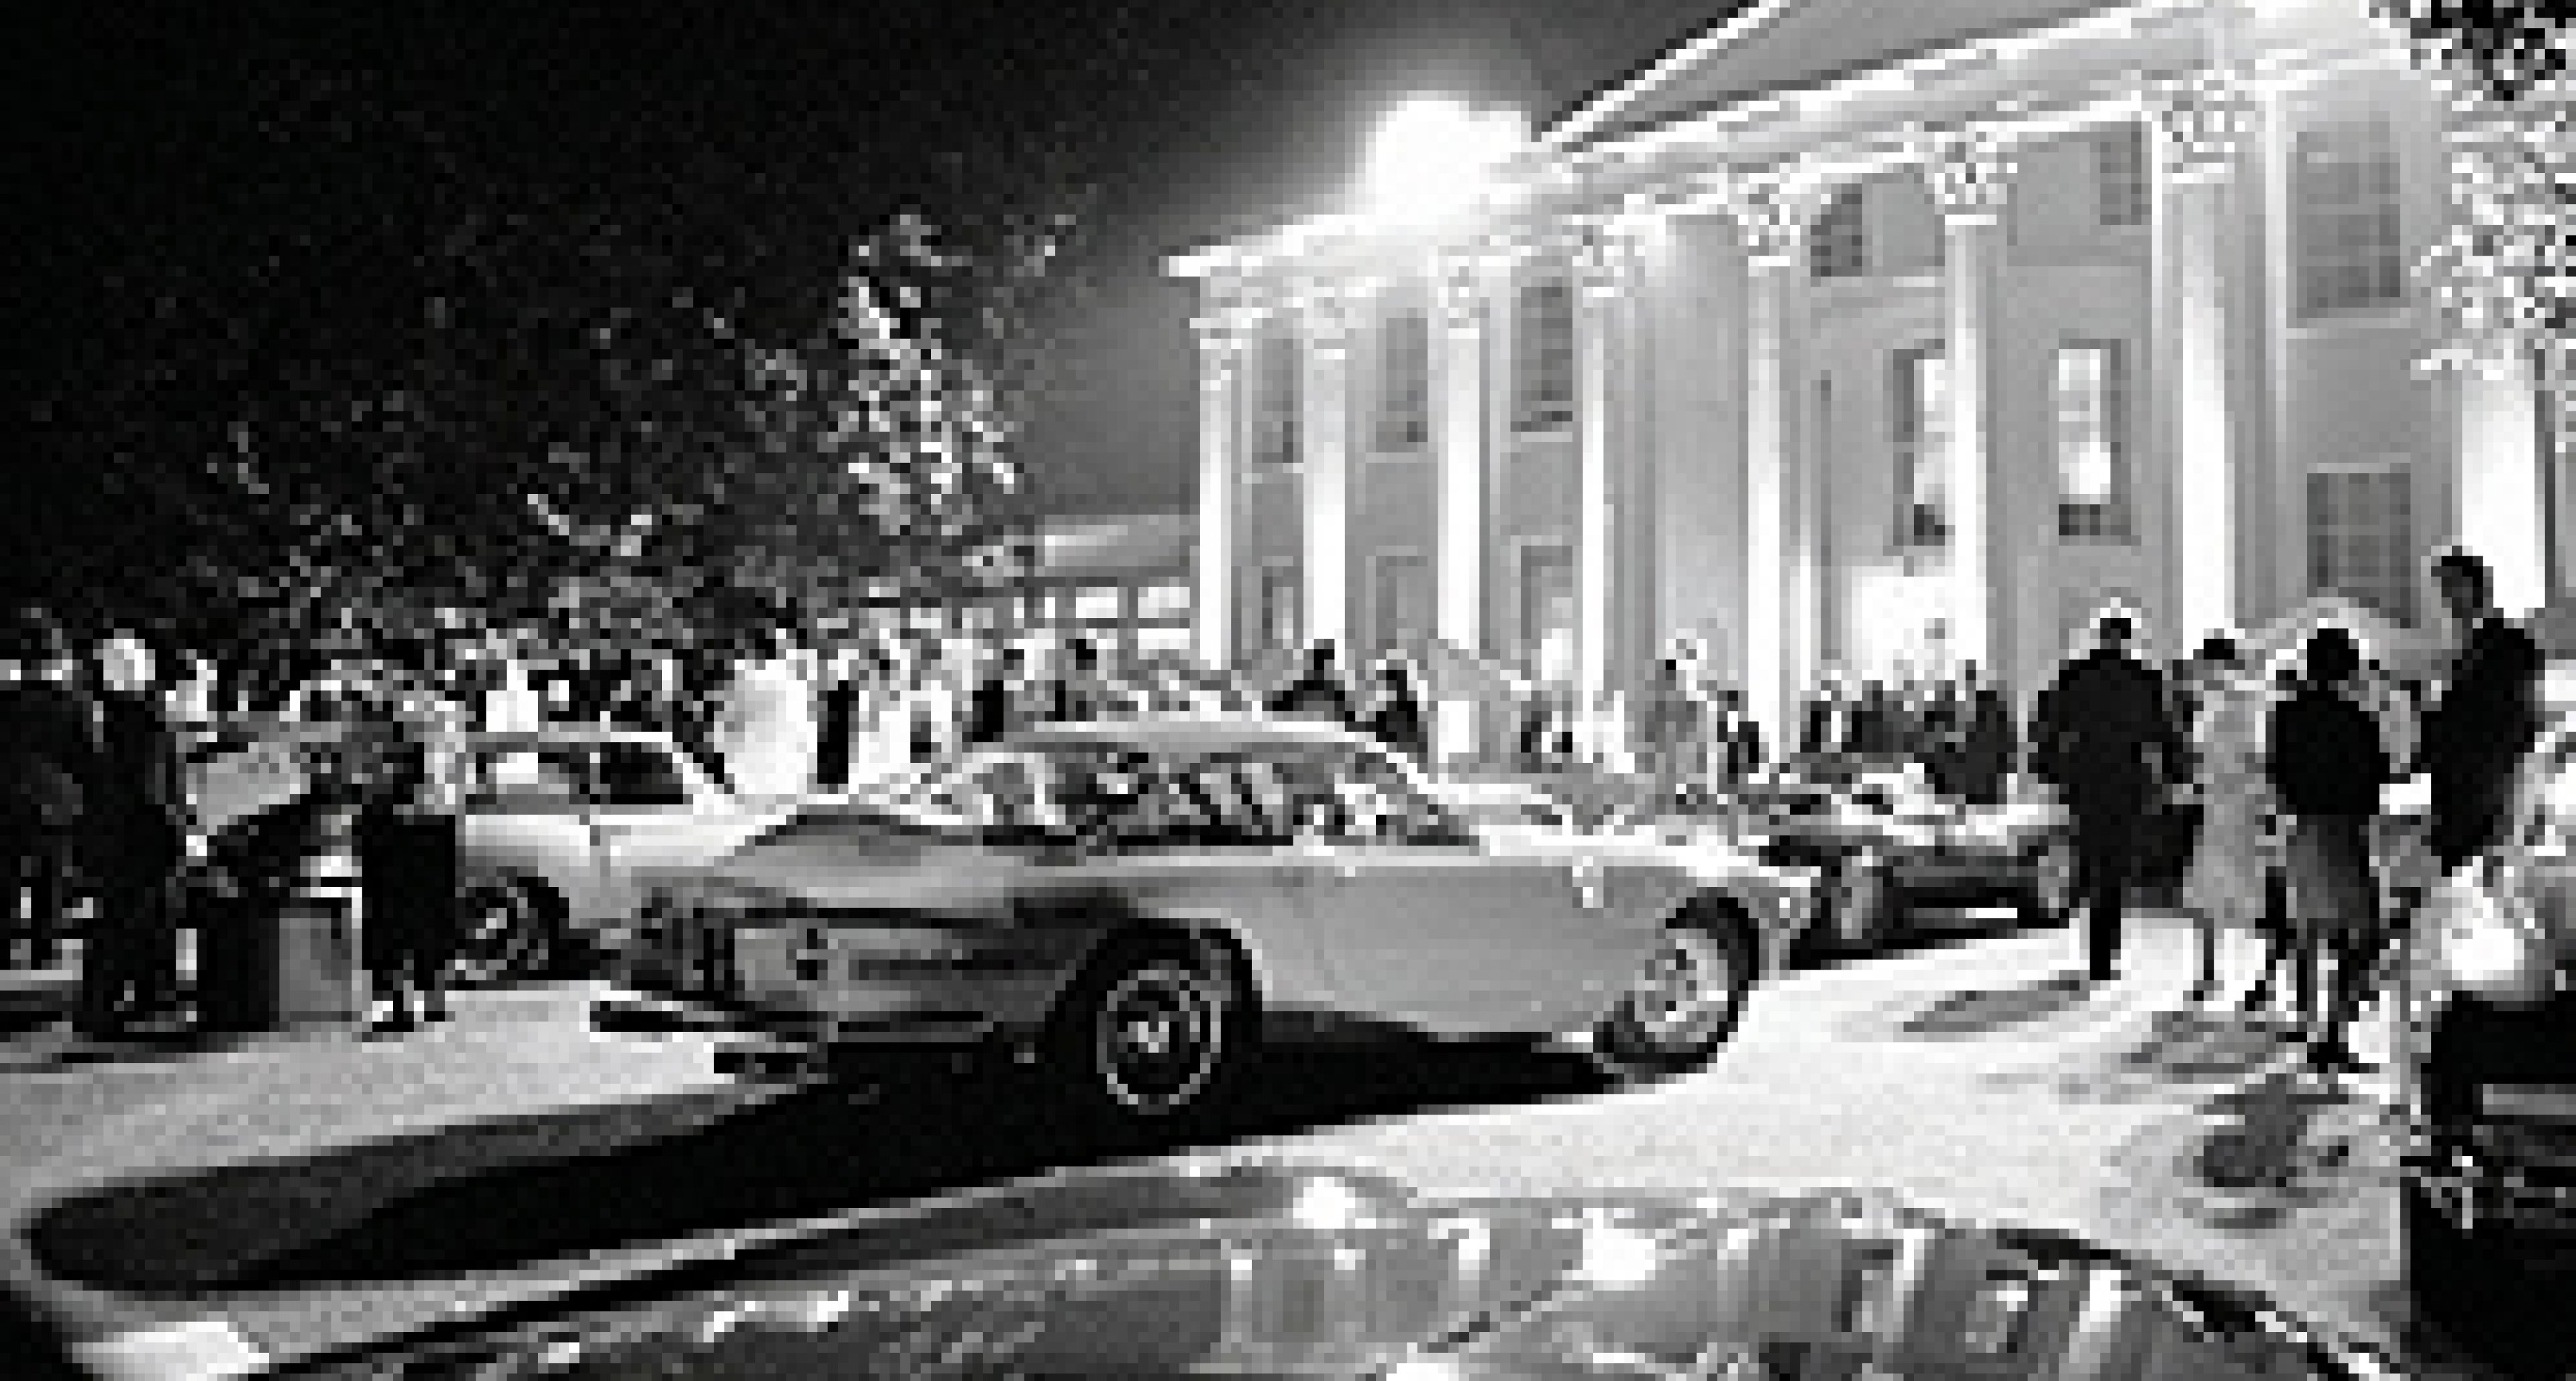 Concours d'Elegance at the Hurlingham Club, 27-29 July 2011